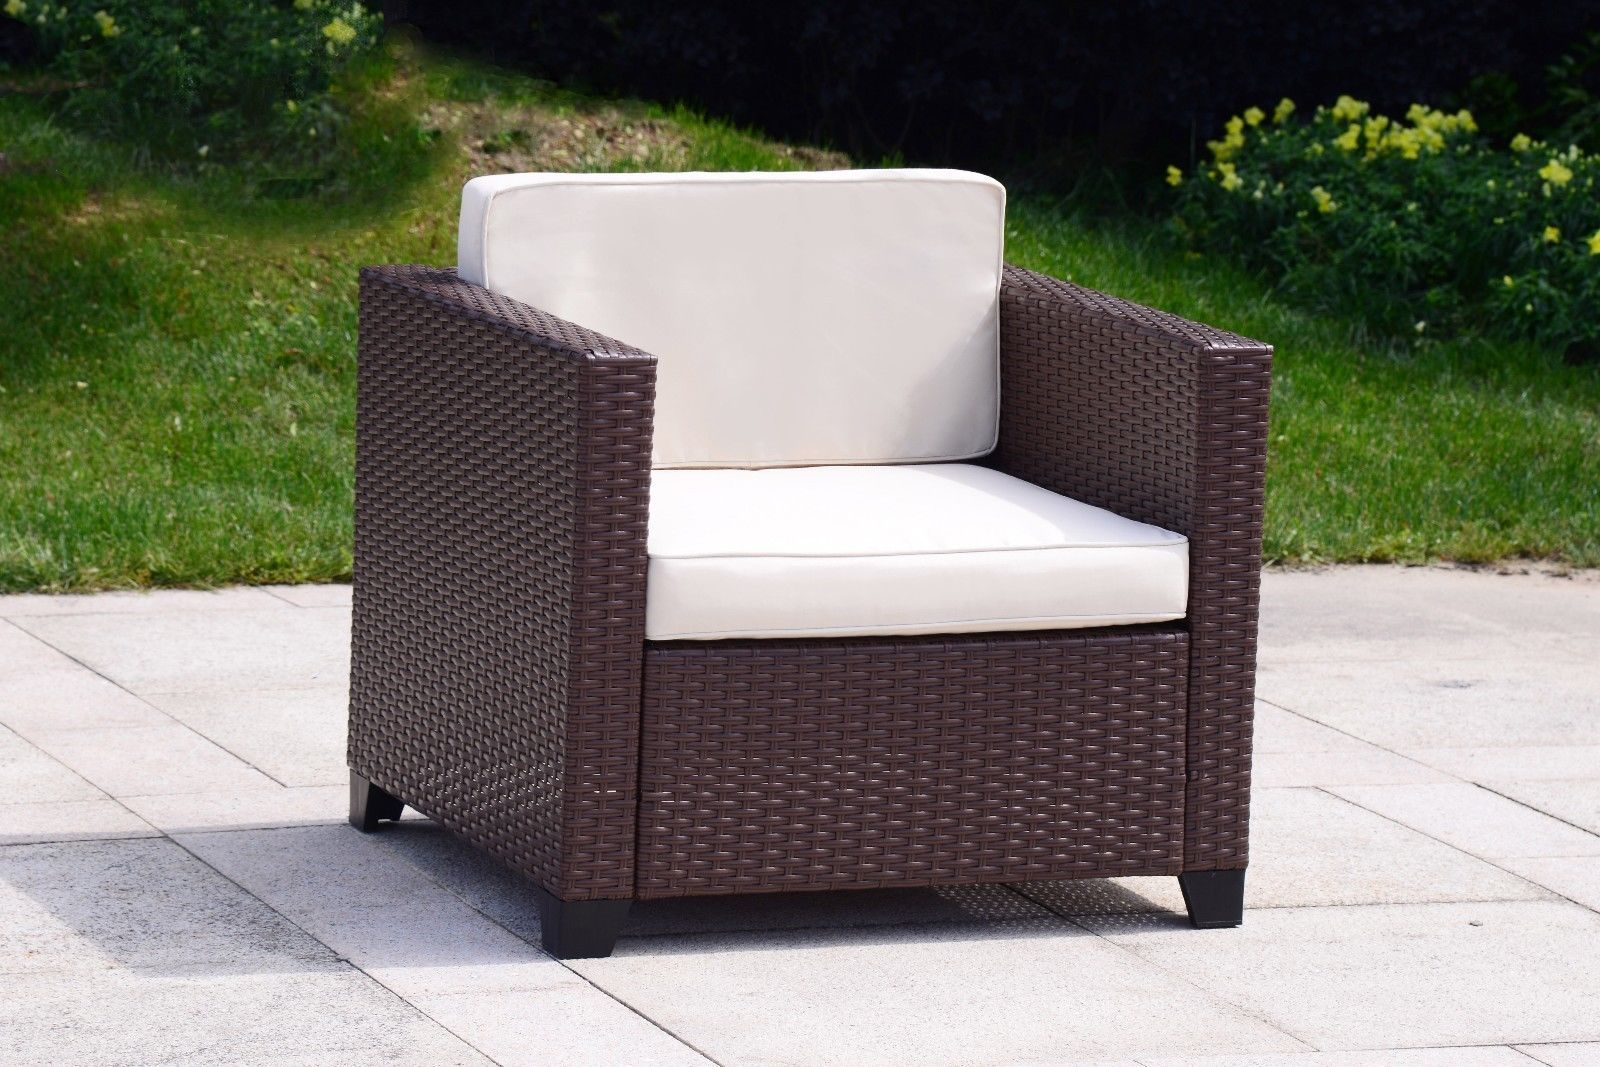 5 PC Wicker Rattan Chair Sofa Cushioned Patio Lawn Sectional Ottoman Set Brown